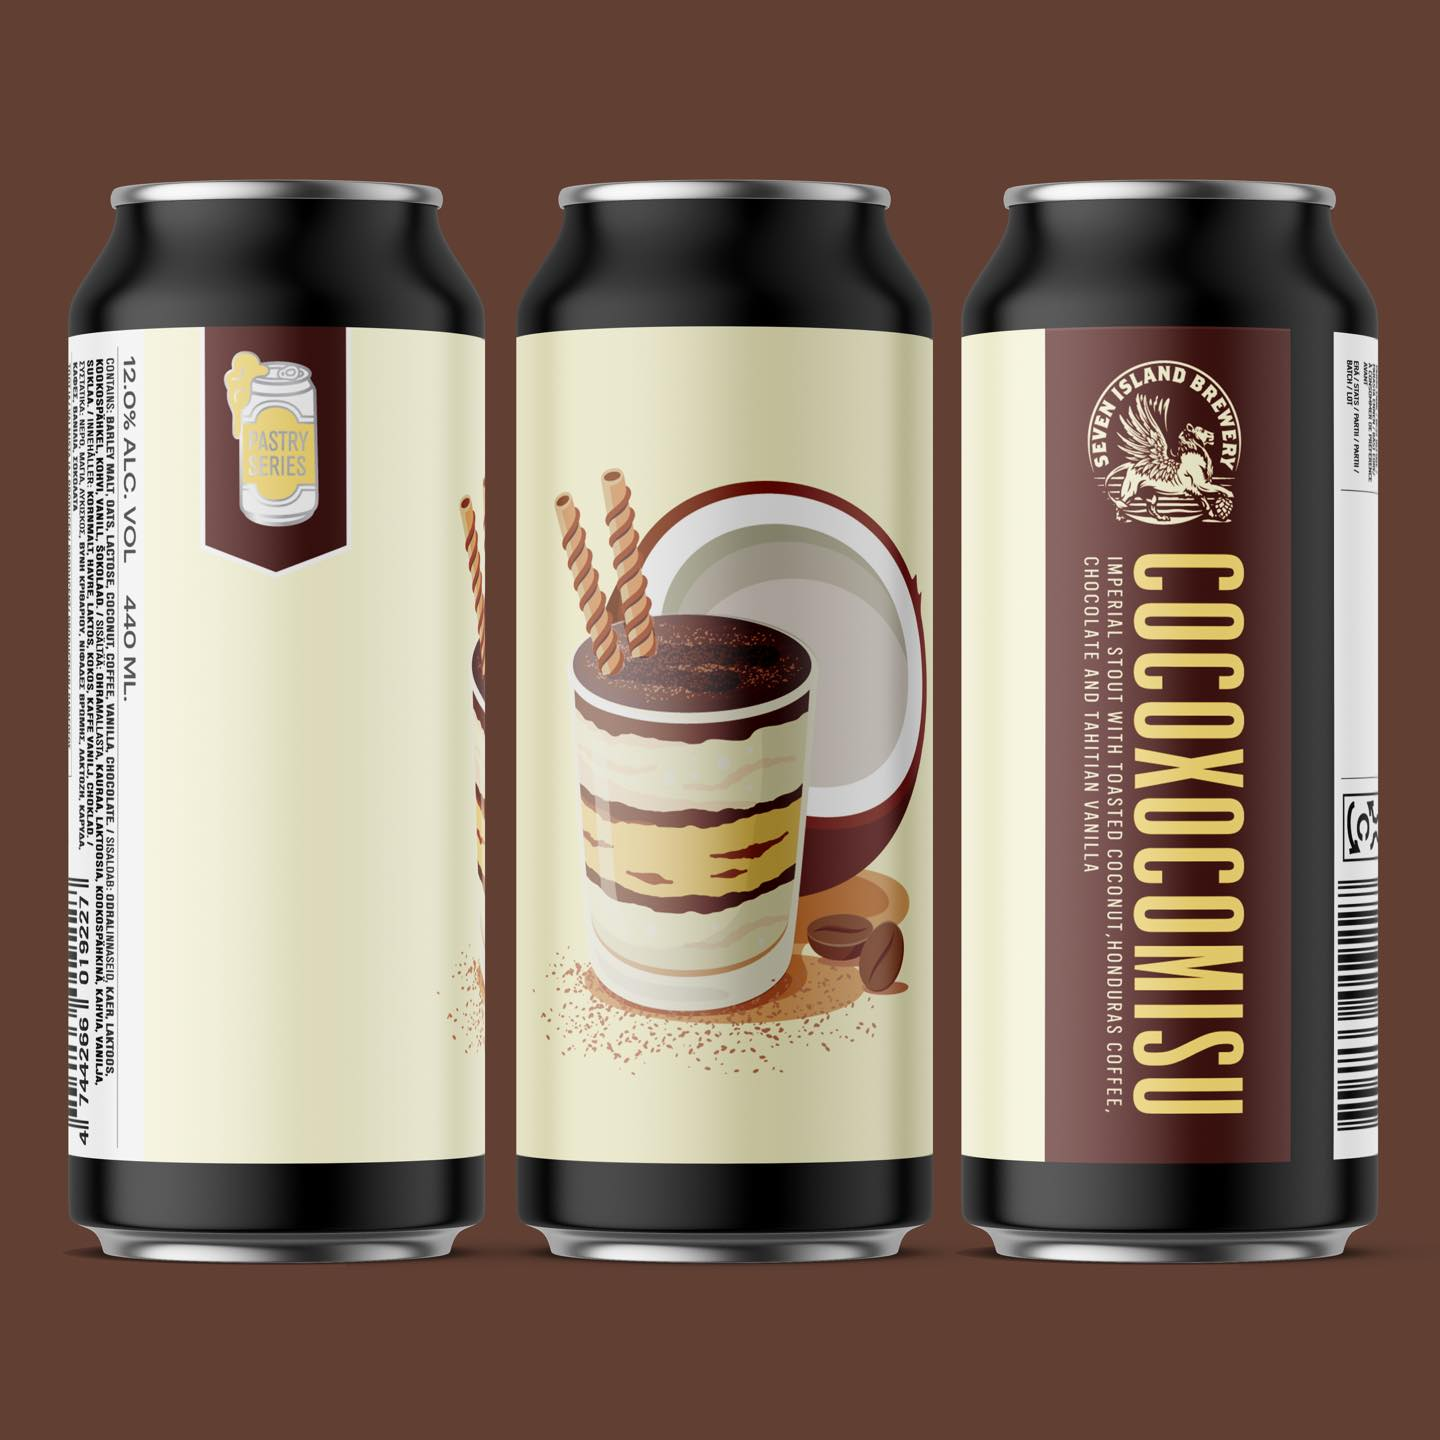 Cocoxocomisu - Imperial Stout with Toasted Coconut, Coffee, Chocolate & Vanilla, 12%, 440ml  Seven Island Brewery